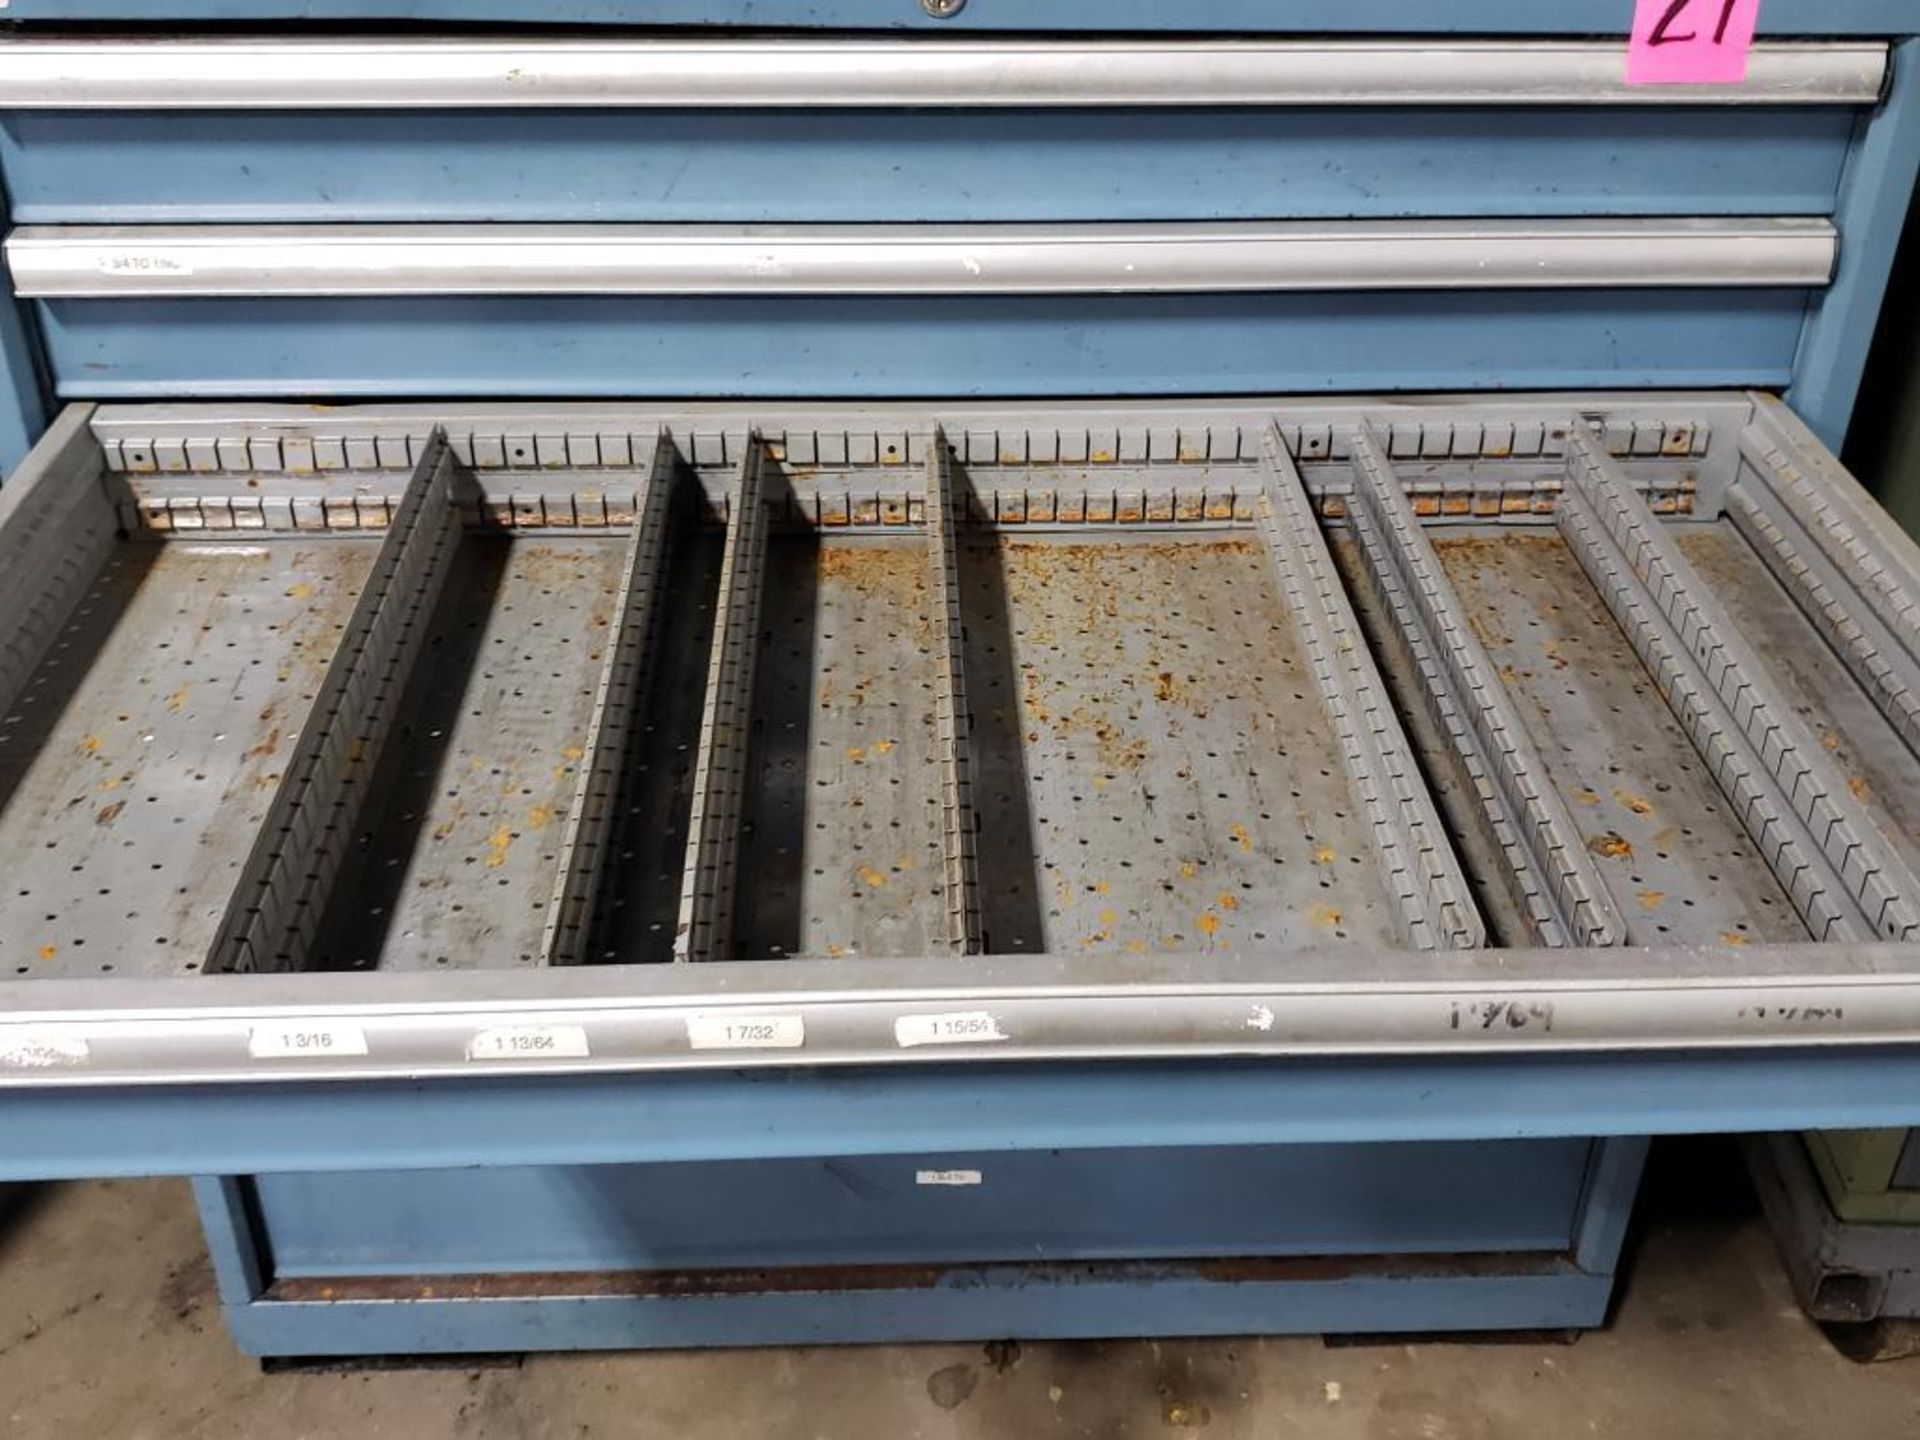 Lot 27 - 7 drawer Lista tool cabinet. Overall dimensions 42Tx40.5Wx23D.